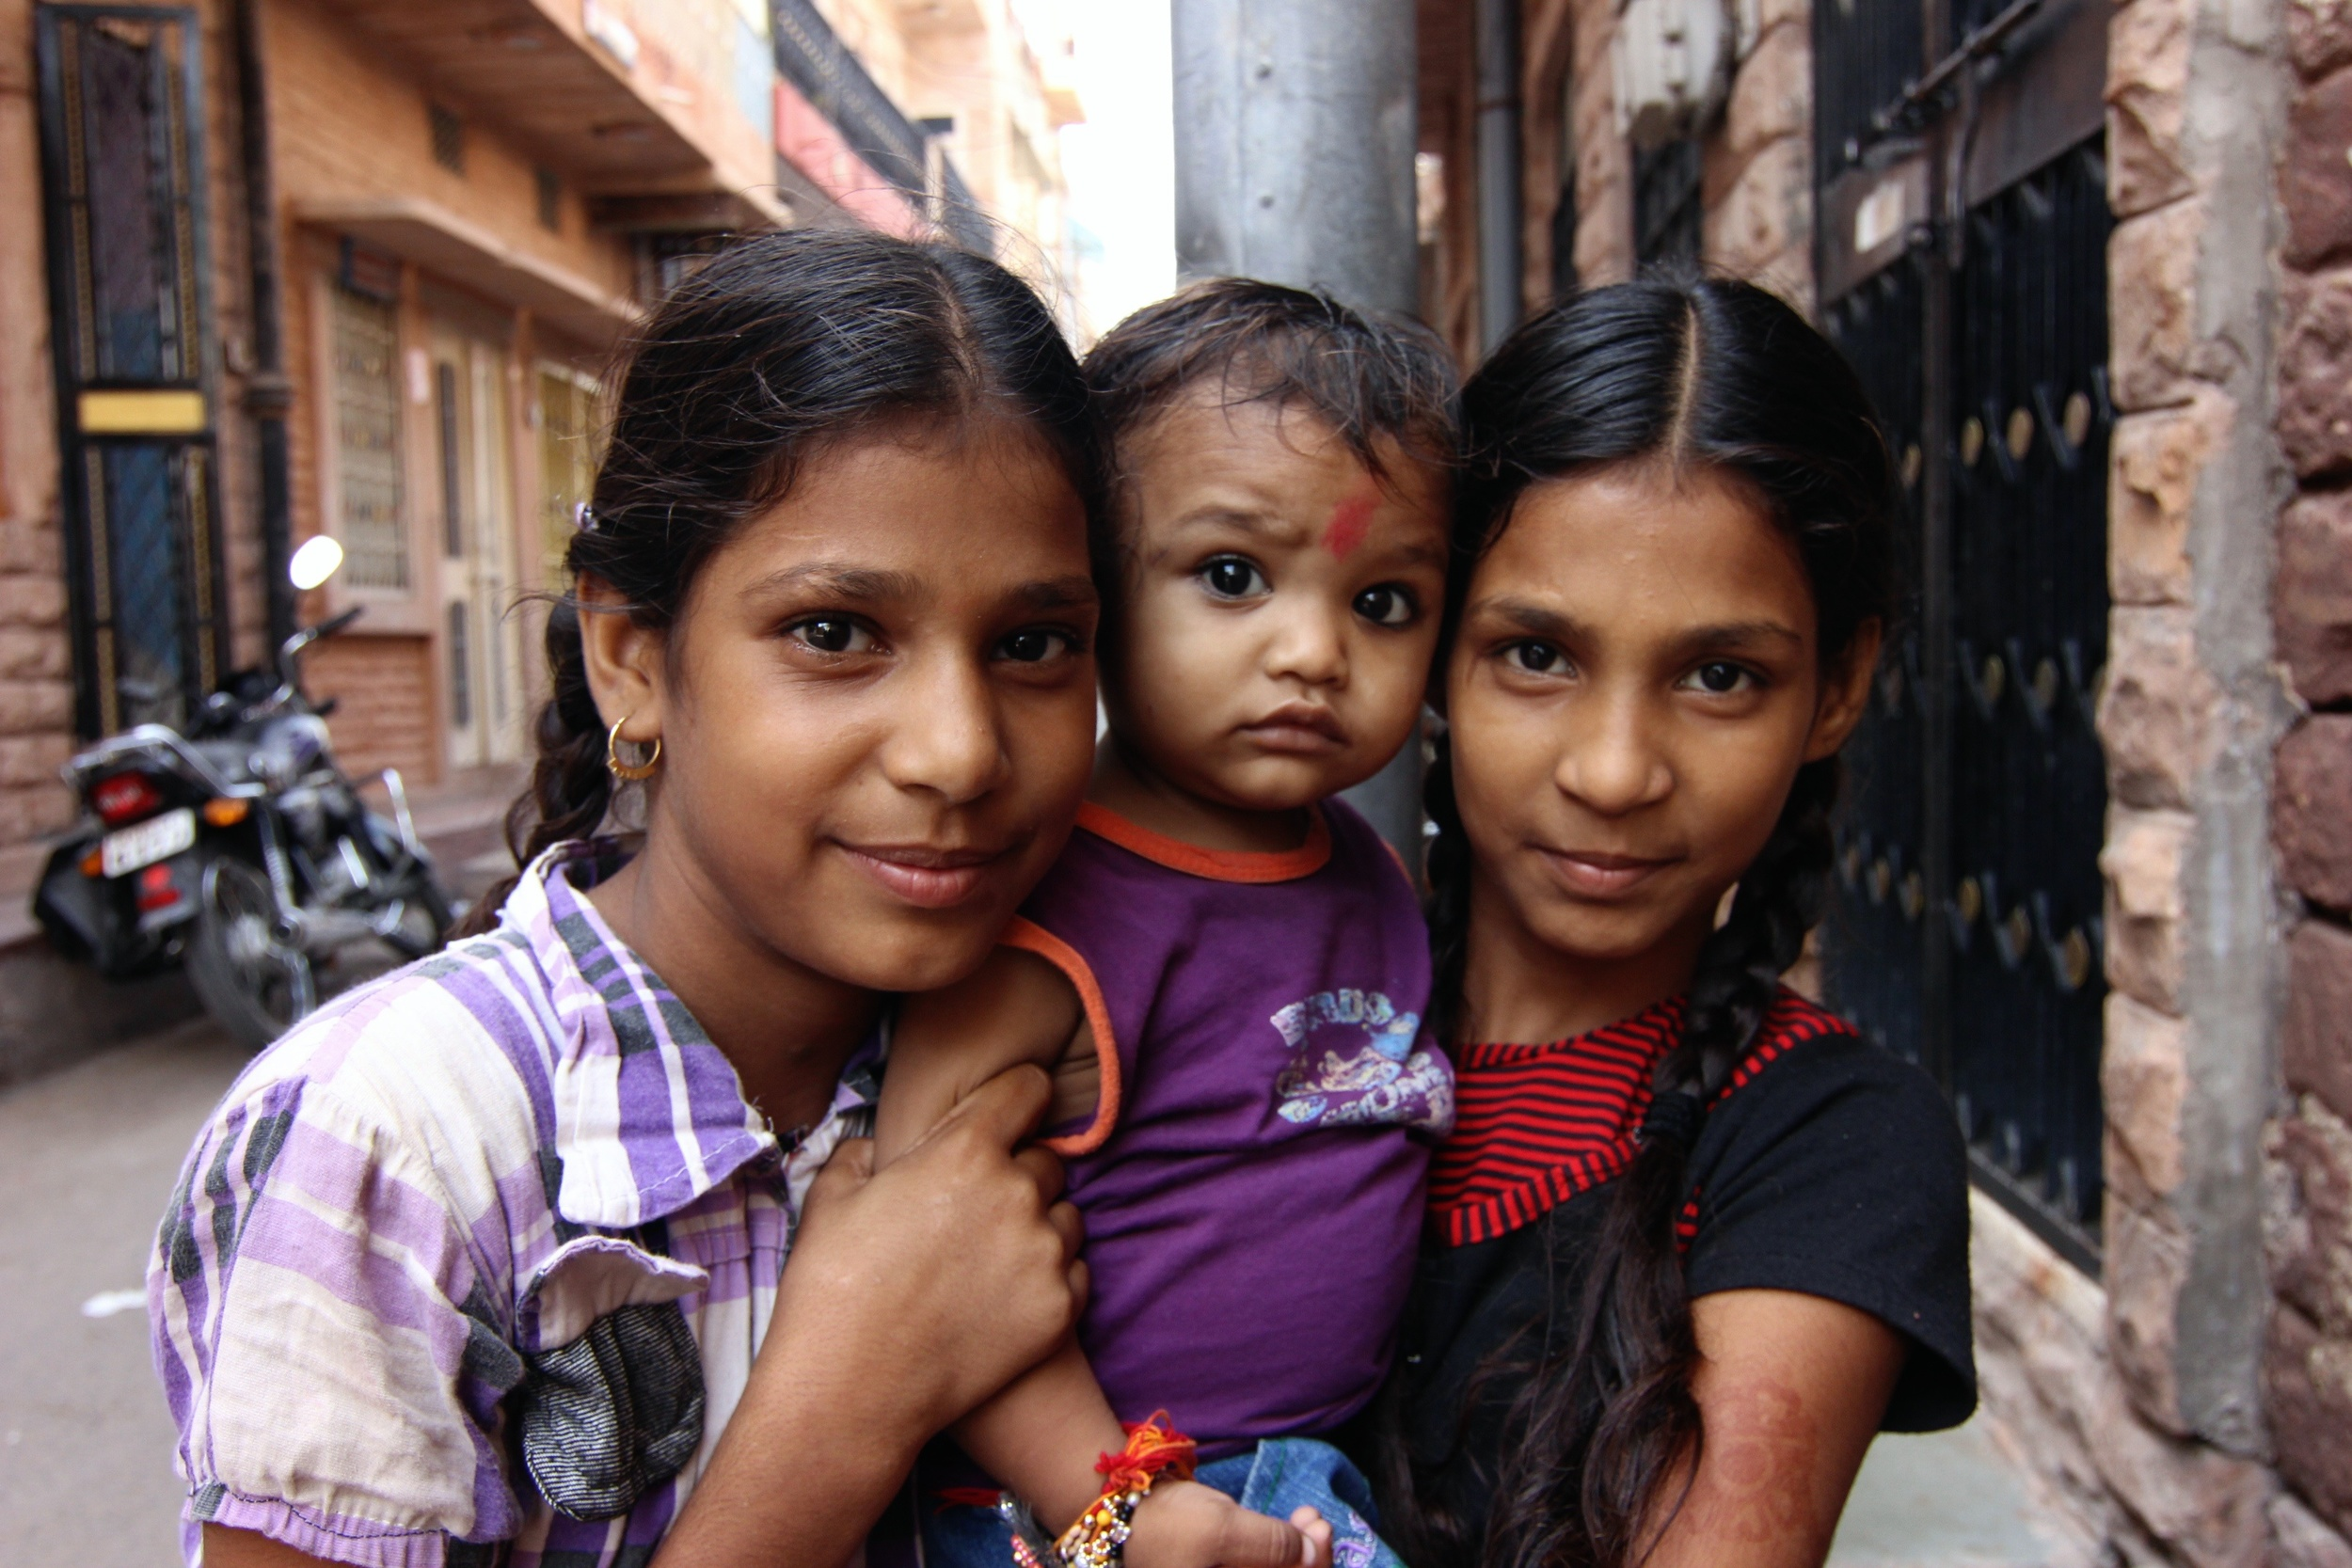 """Nisha, Banraj and Minu. They saw me walking back from the fort in Jodhpur and chased me down the street saying, """"Picture! Picture!"""" Then they asked for ink pens and rupees, in that order."""